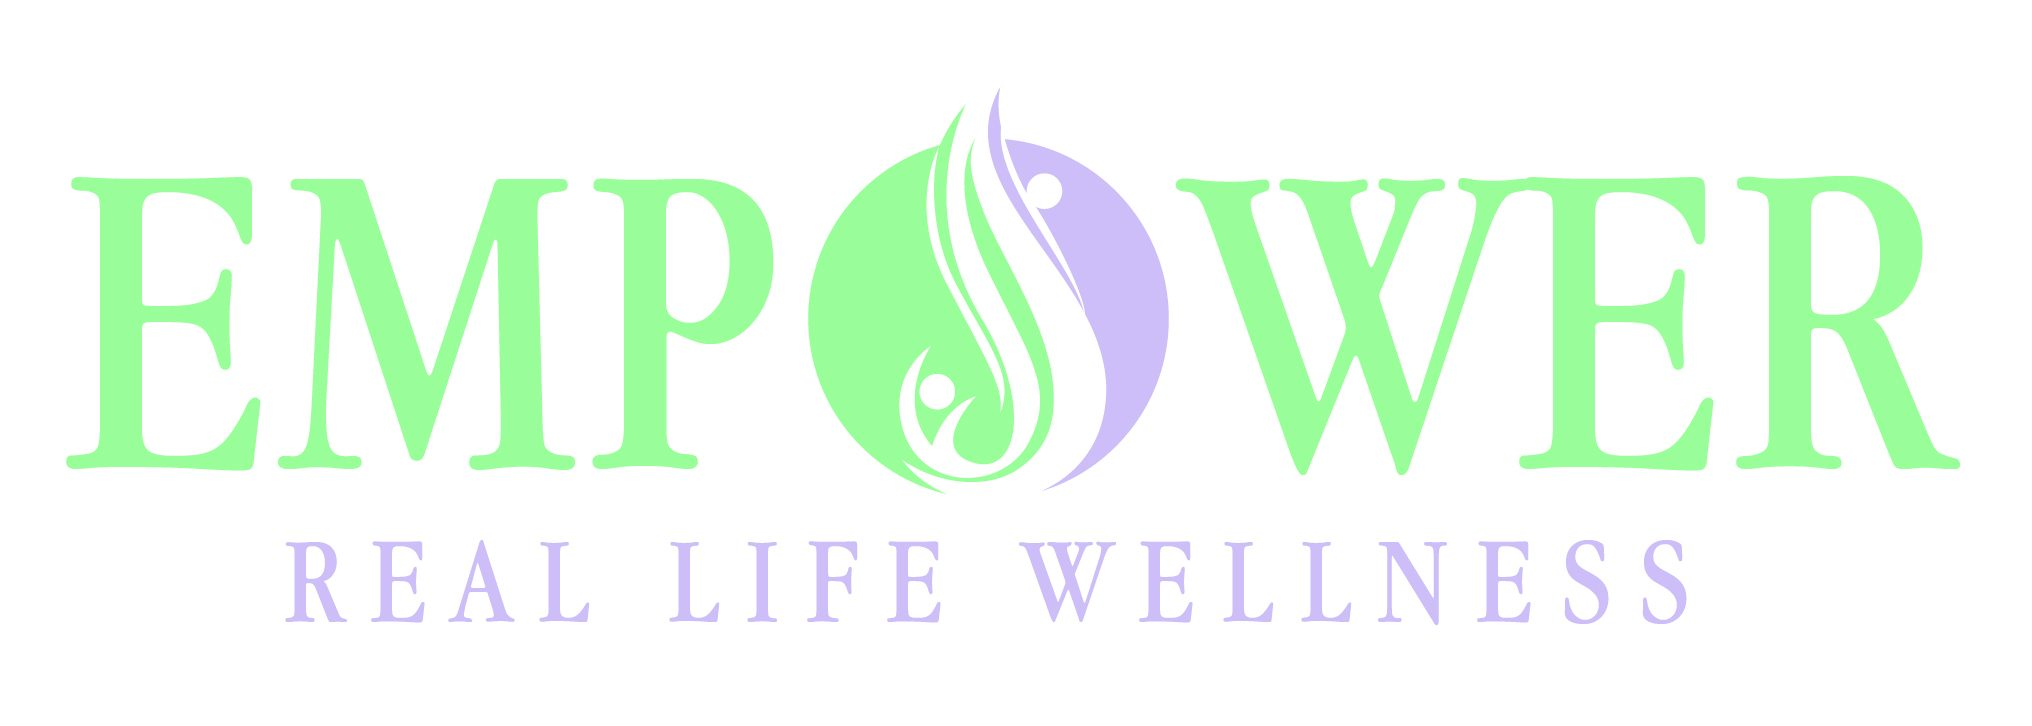 Empower: Real Life Wellness